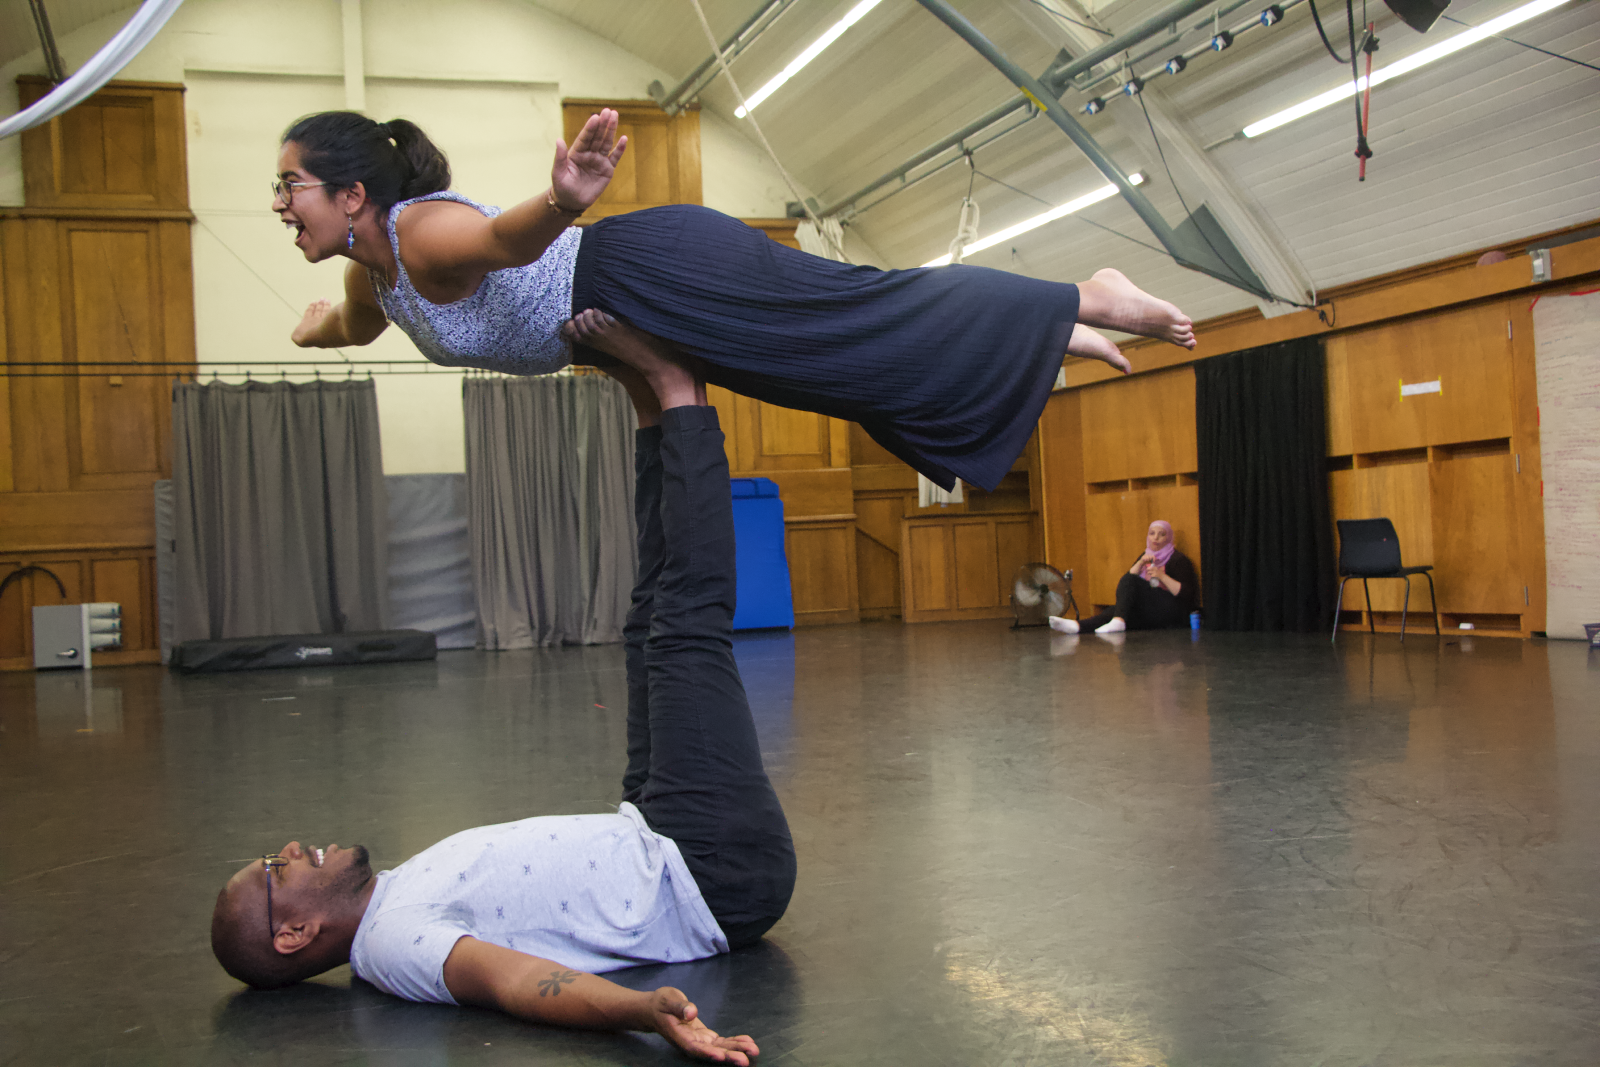 a young man holds up a young woman on his feet in a yoga pose